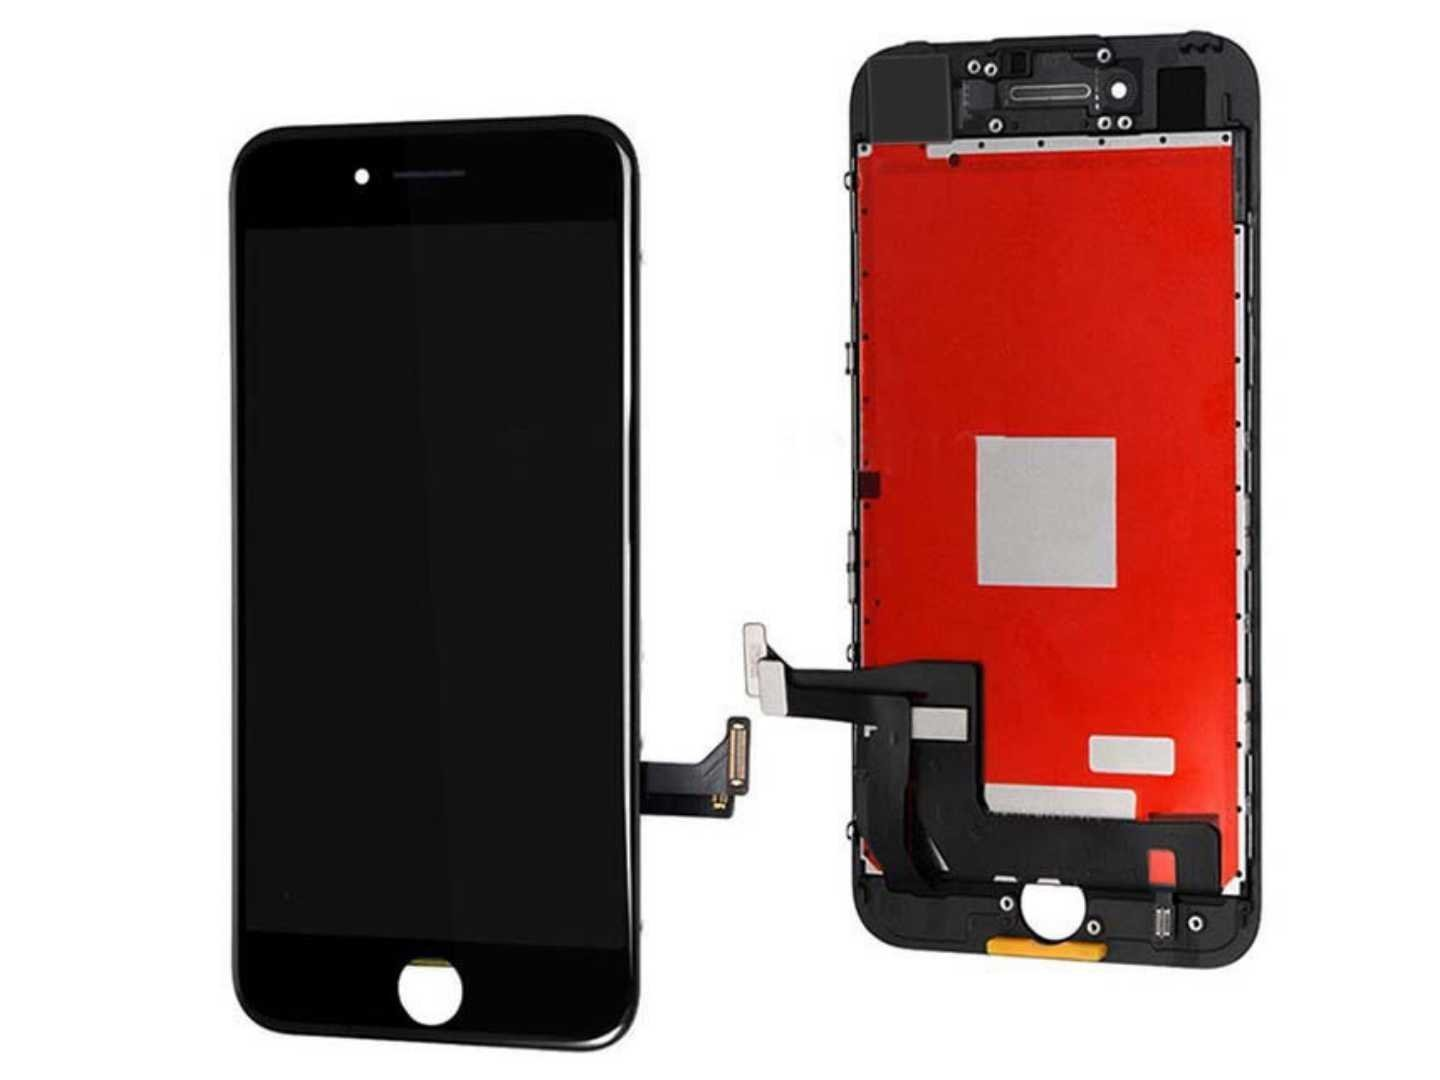 iPhone 7 plus screen replacement, iphone 7 plus lcd screen with Touch Screen Digitizer Fram Assembly Full Set + free Tools (black)